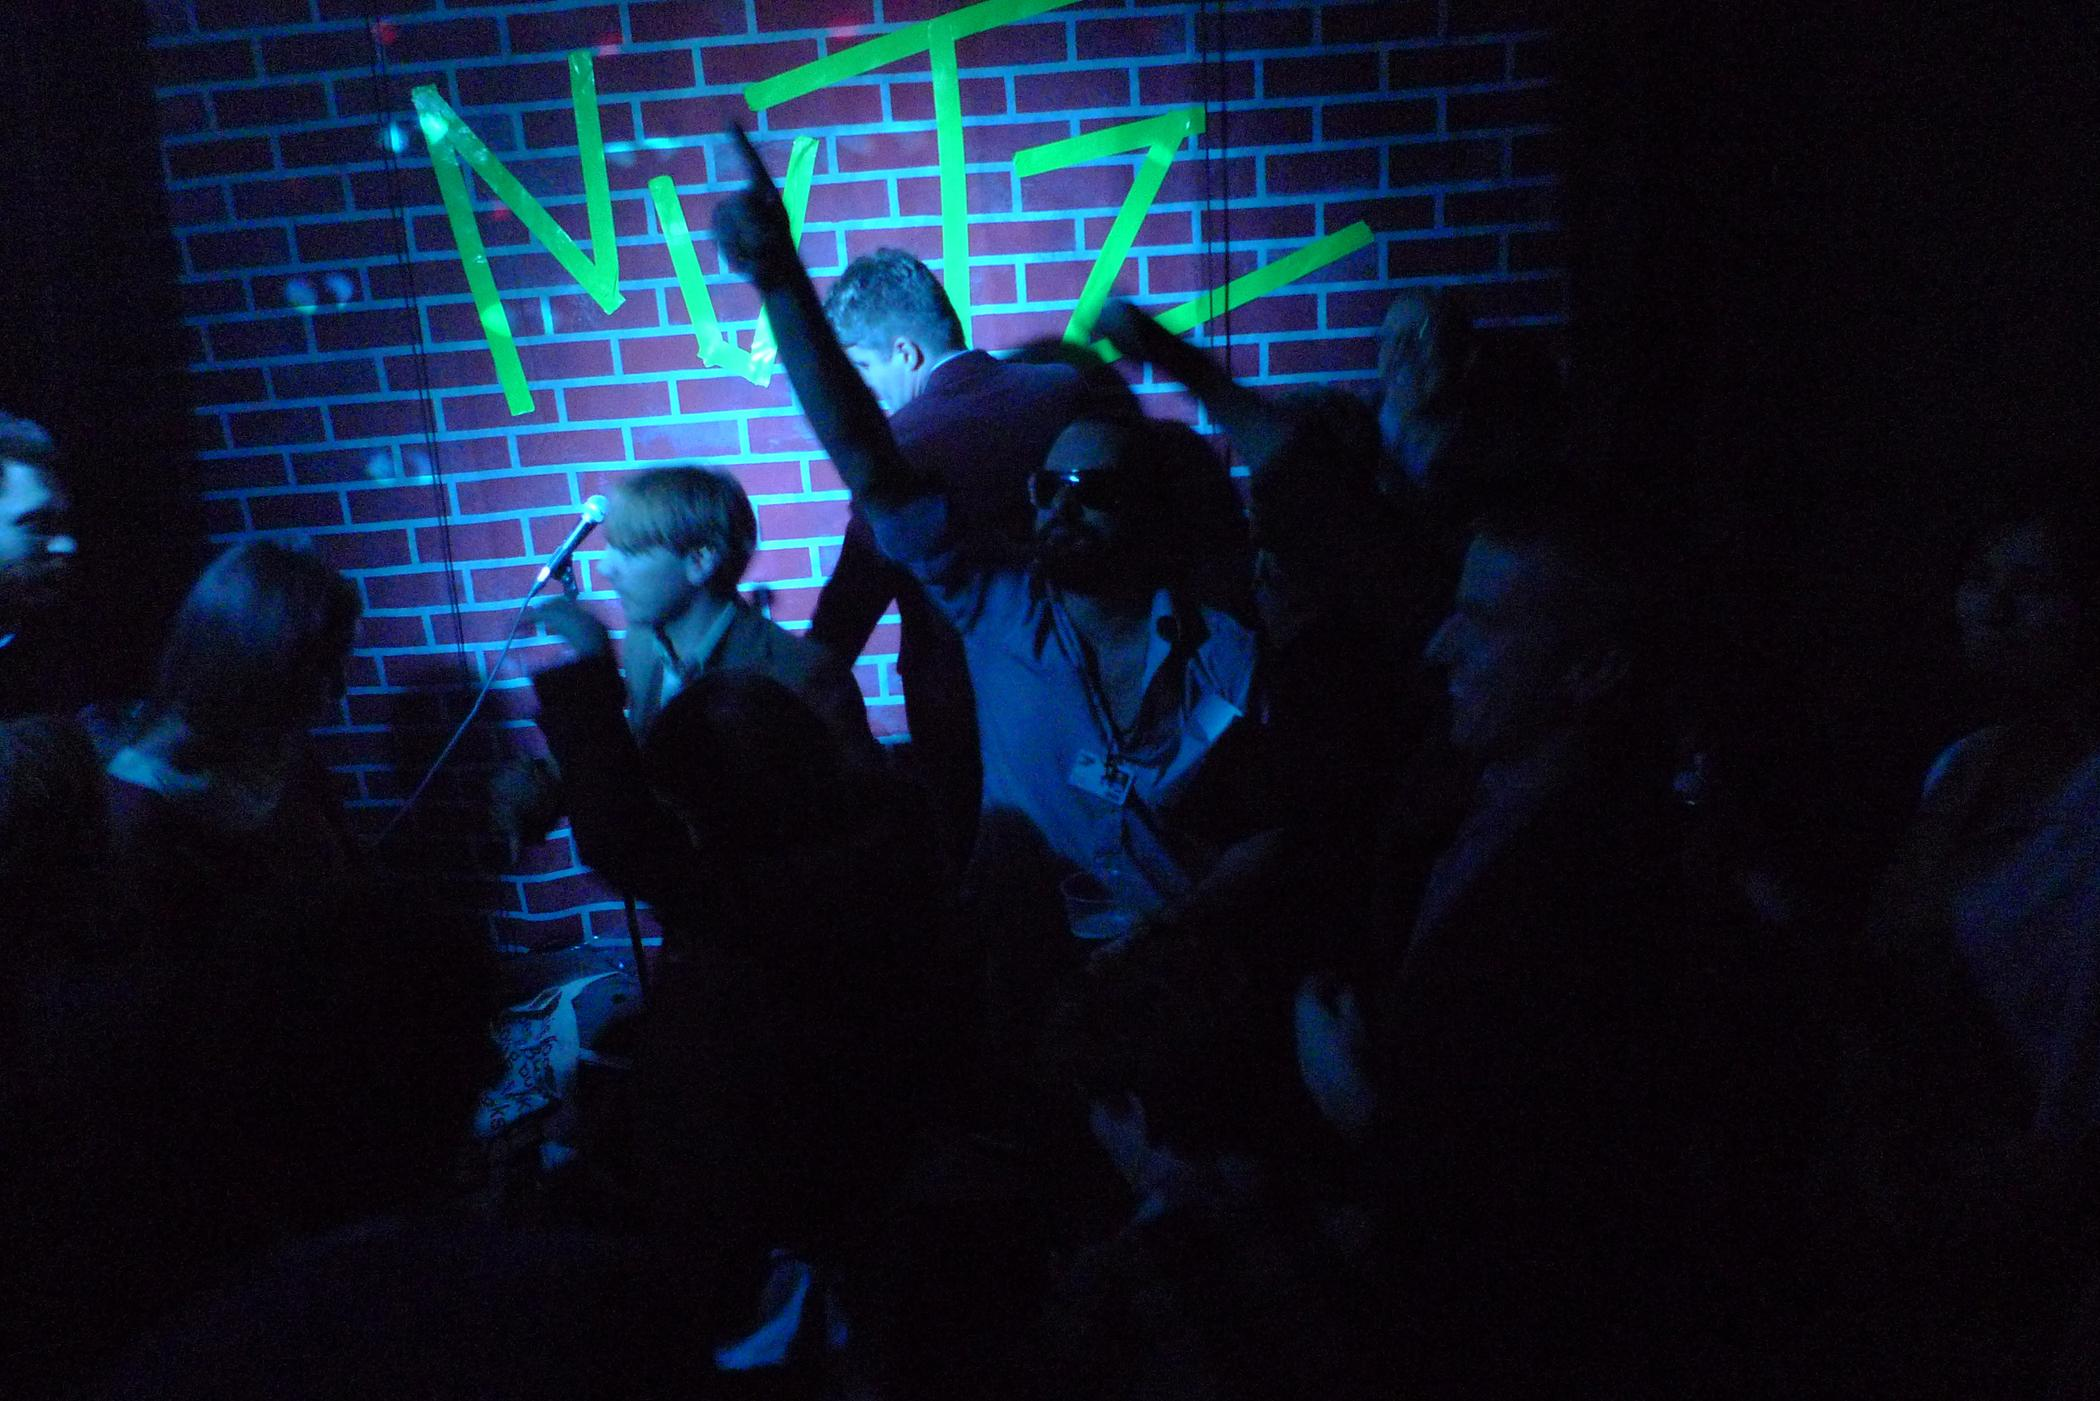 """Young people dance in dark room with a single spotlight near a brick wall with the word """"NUTZ"""" appearing in neon green tape."""